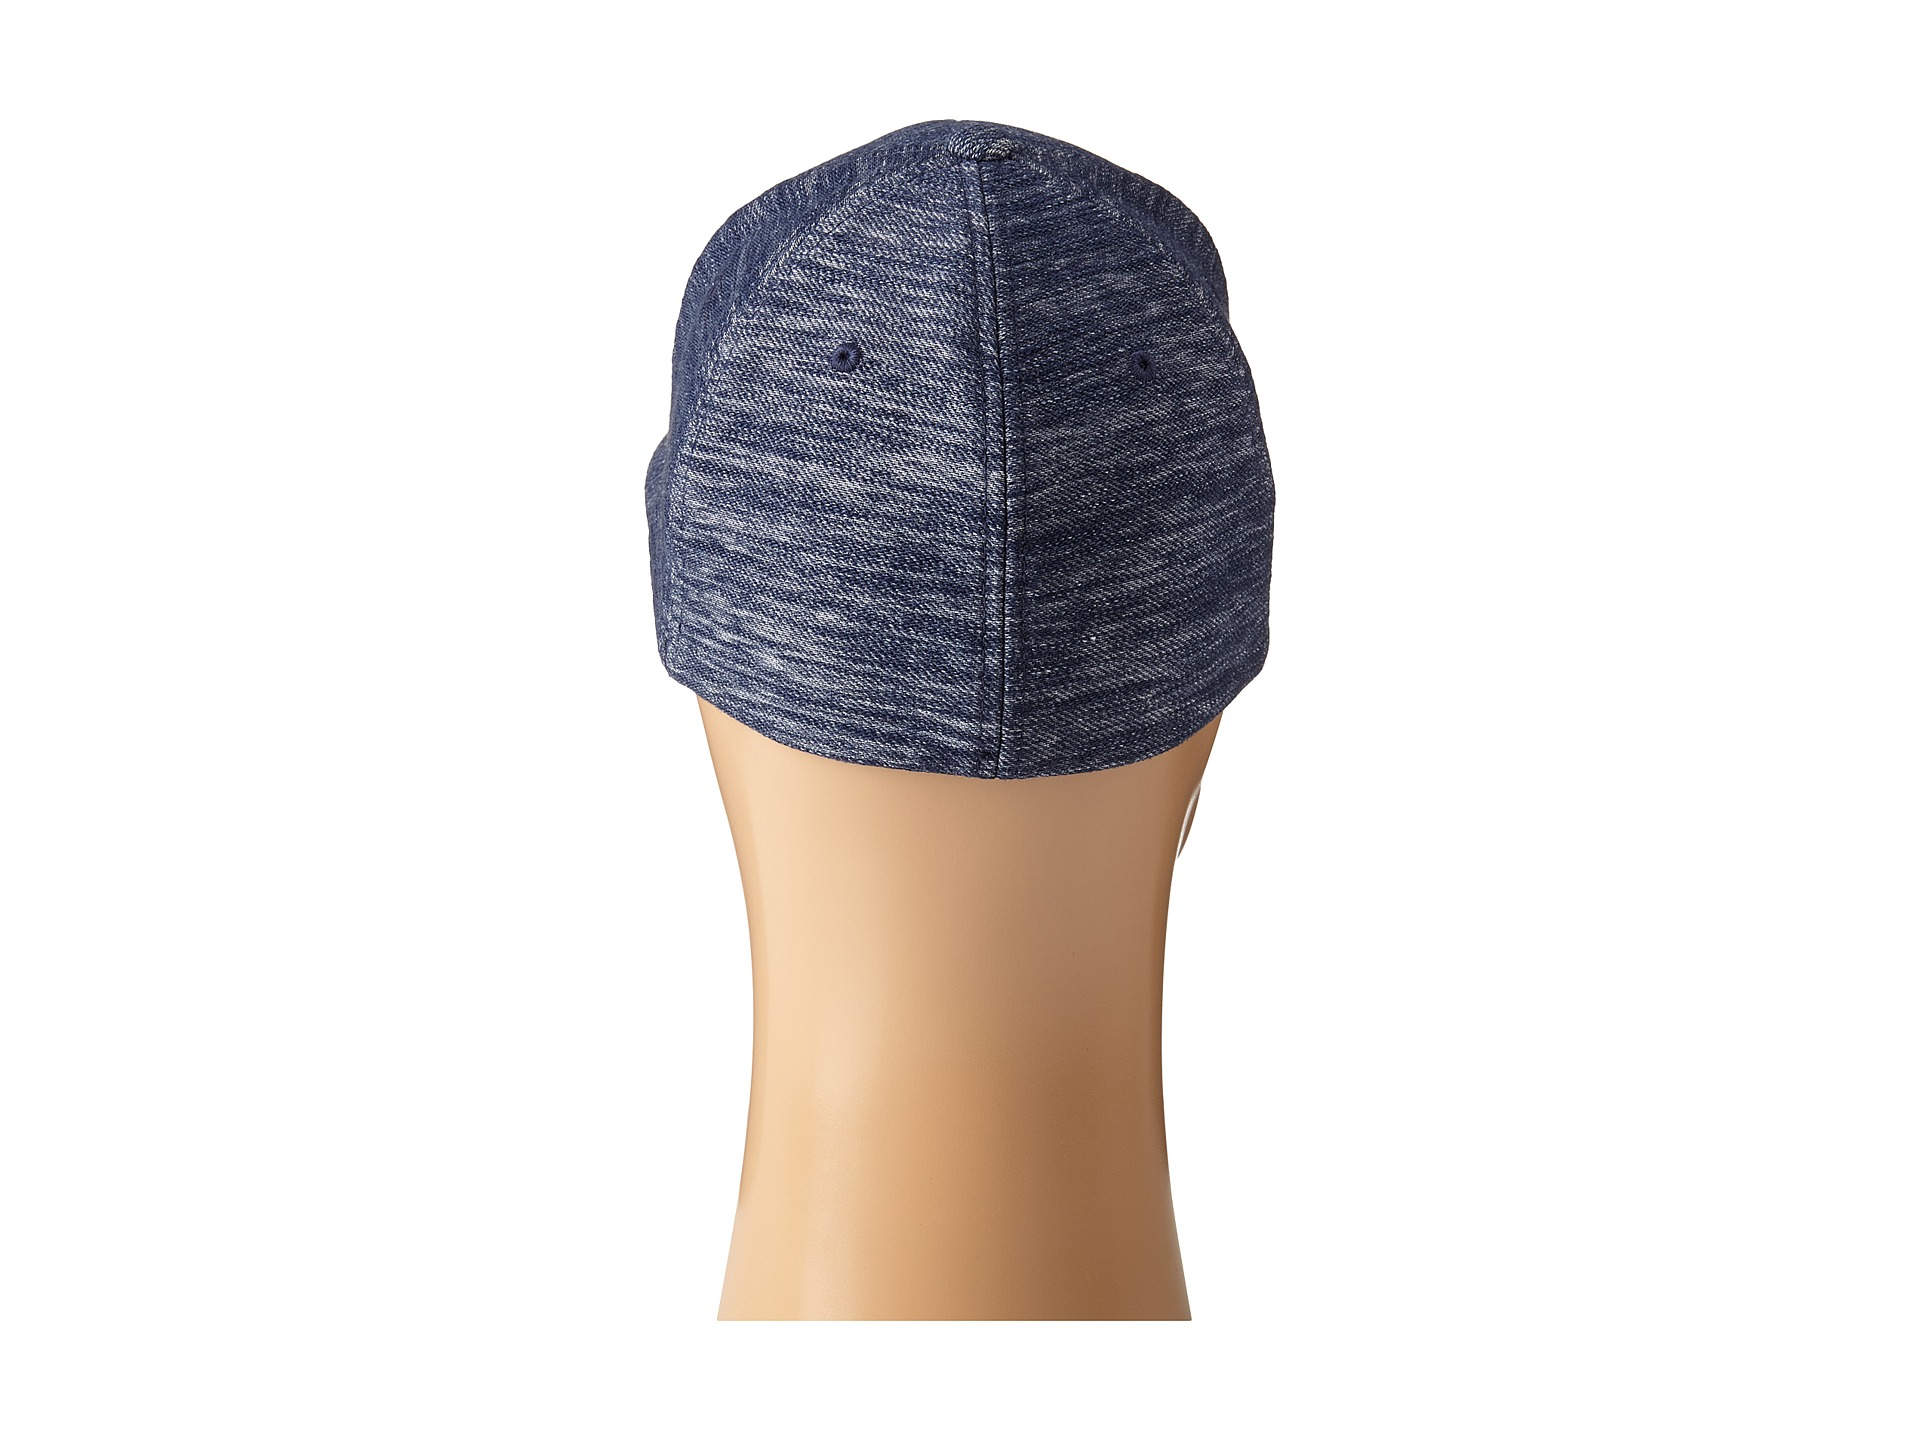 sneakers for cheap 2b634 2a118 Nixon Deep Down Textured Ff Athletic Hat in Blue for Men - Lyst